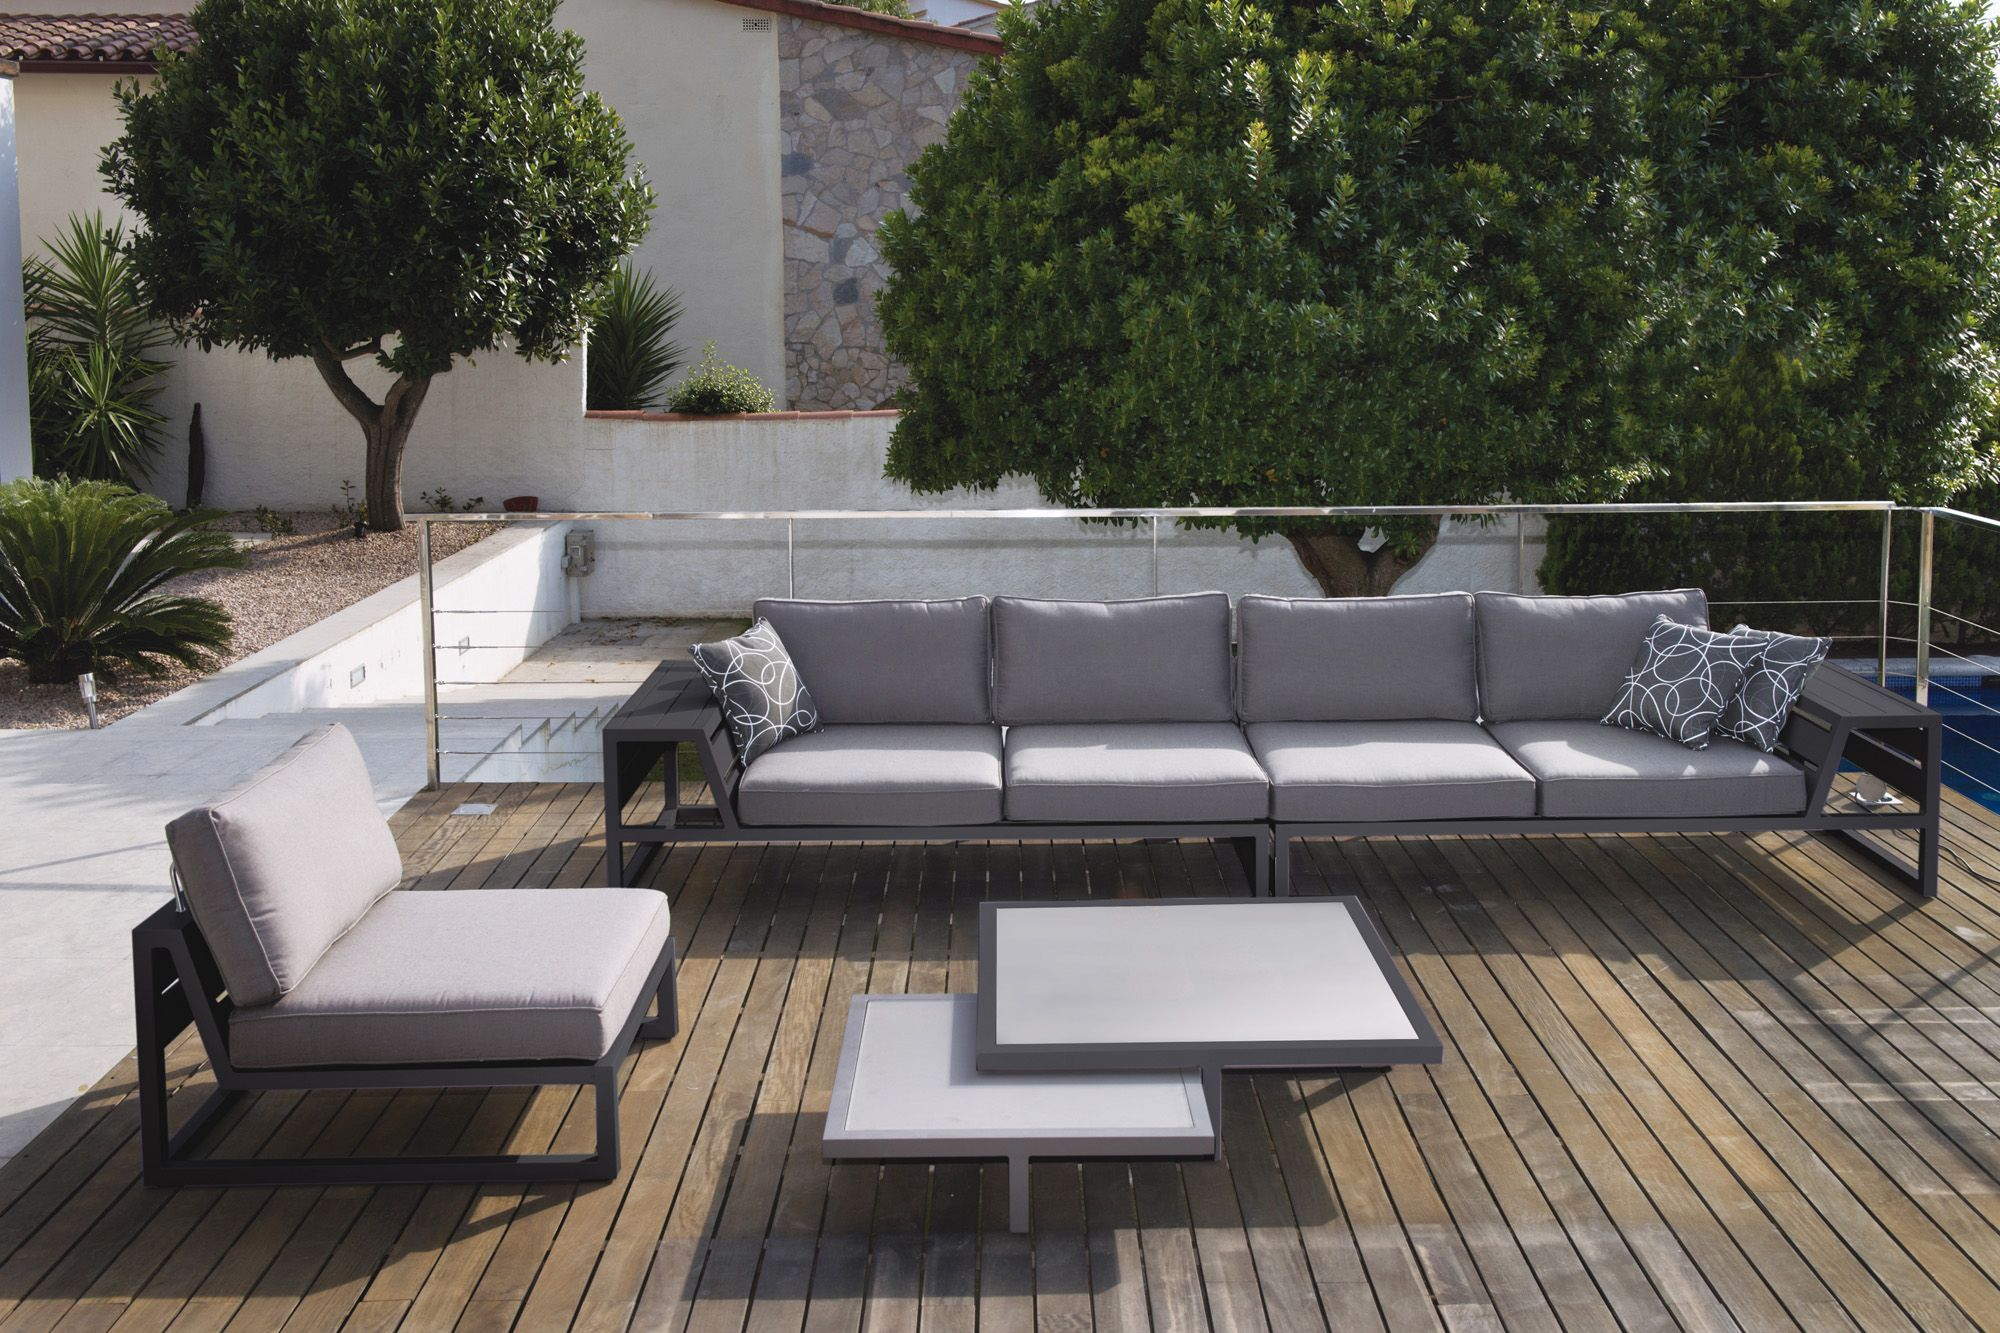 garden furniture retails and wholesales in france and spain gardenart furniture offers a range of high quality modern outdoor furnituregarden chairs - Garden Furniture Offers